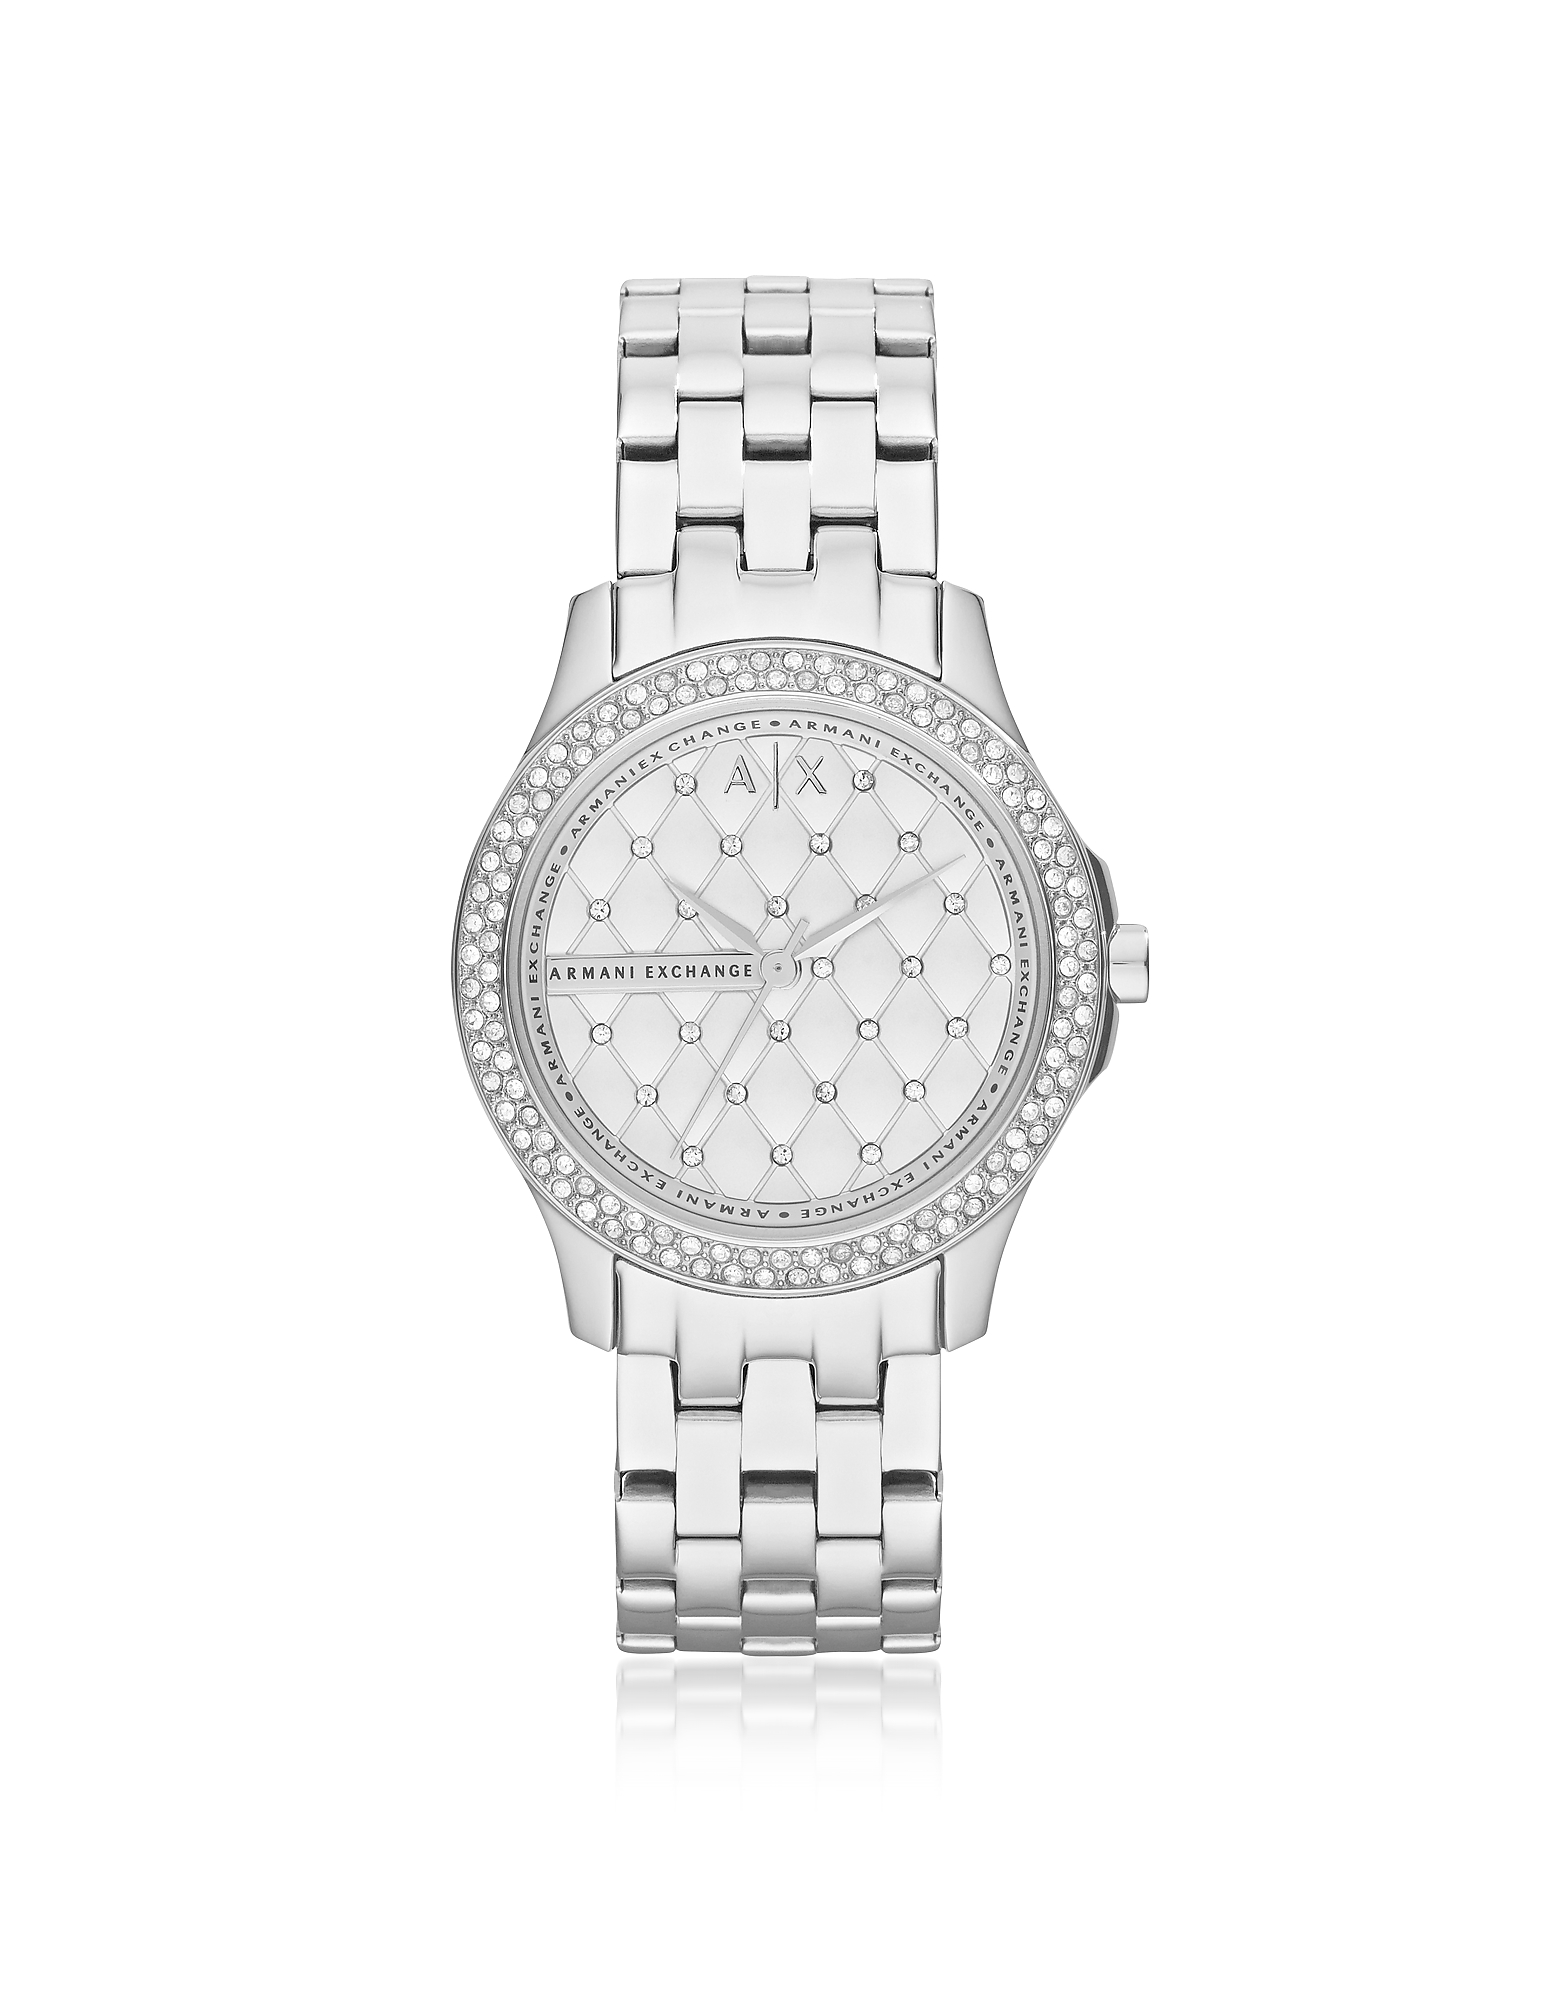 Armani Exchange Women's Watches, Lady Hampton Stainless Steel Women's Watch